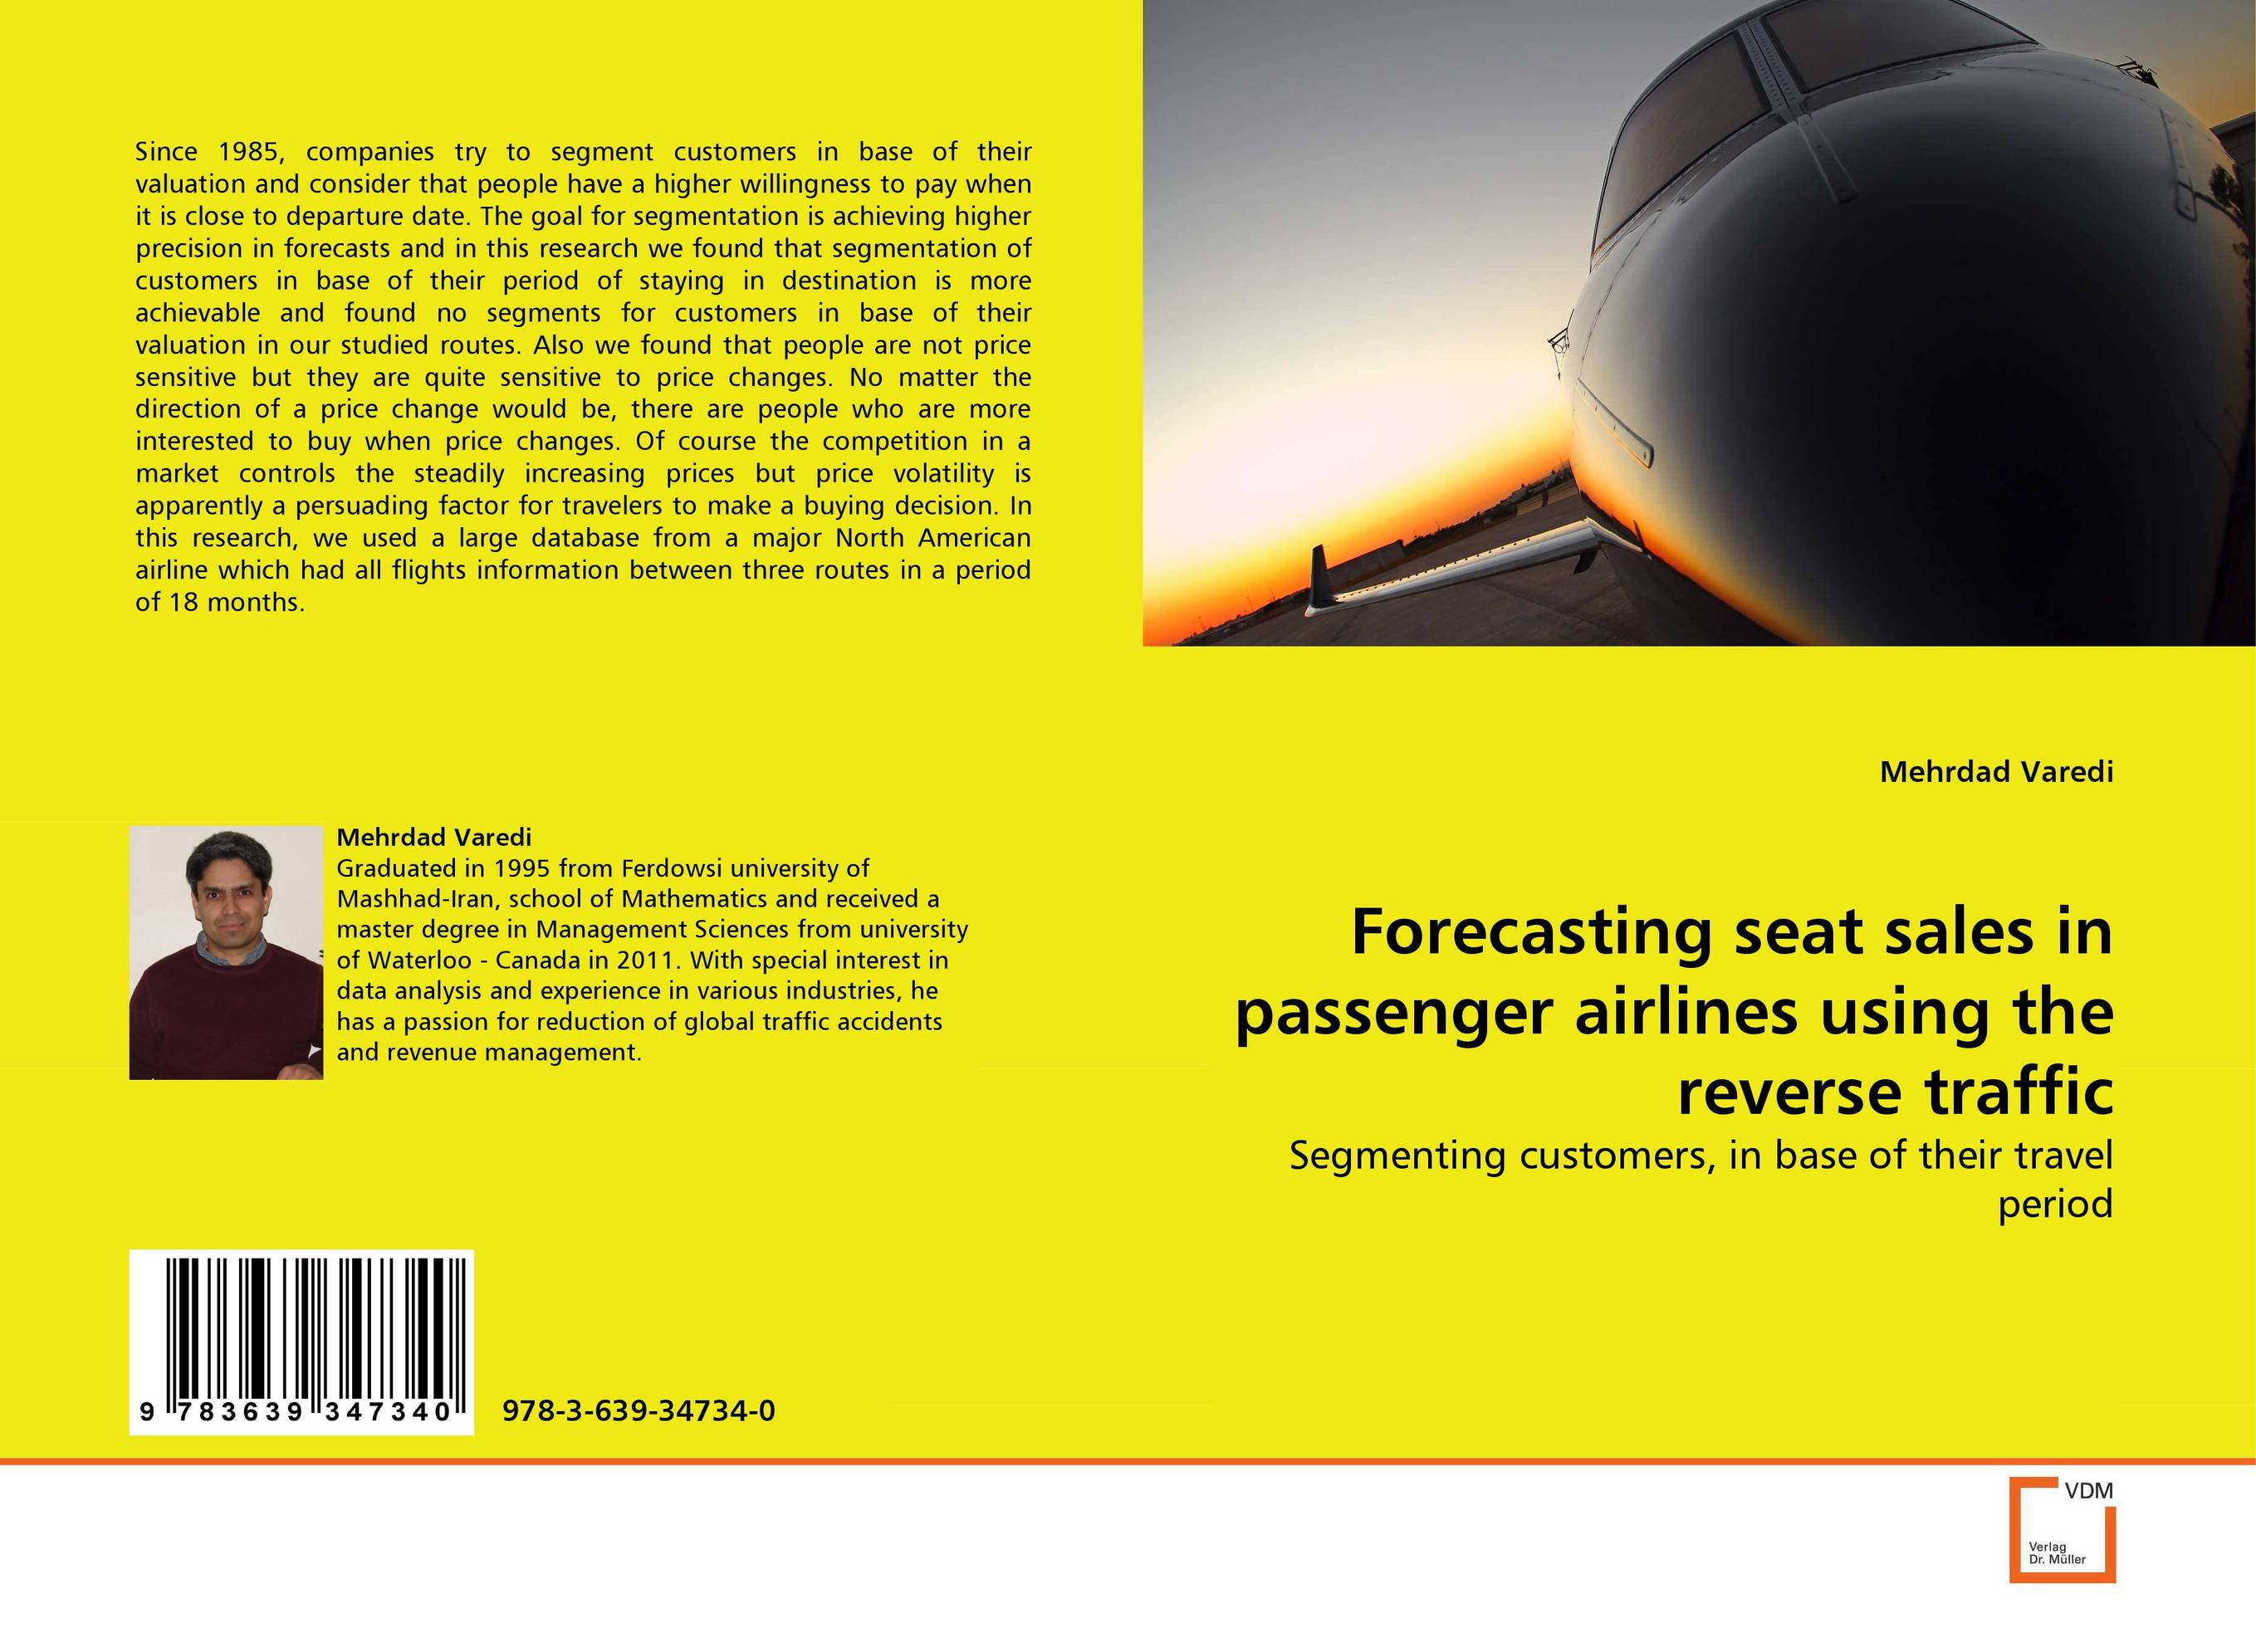 Forecasting seat sales in passenger airlines using the reverse traffic